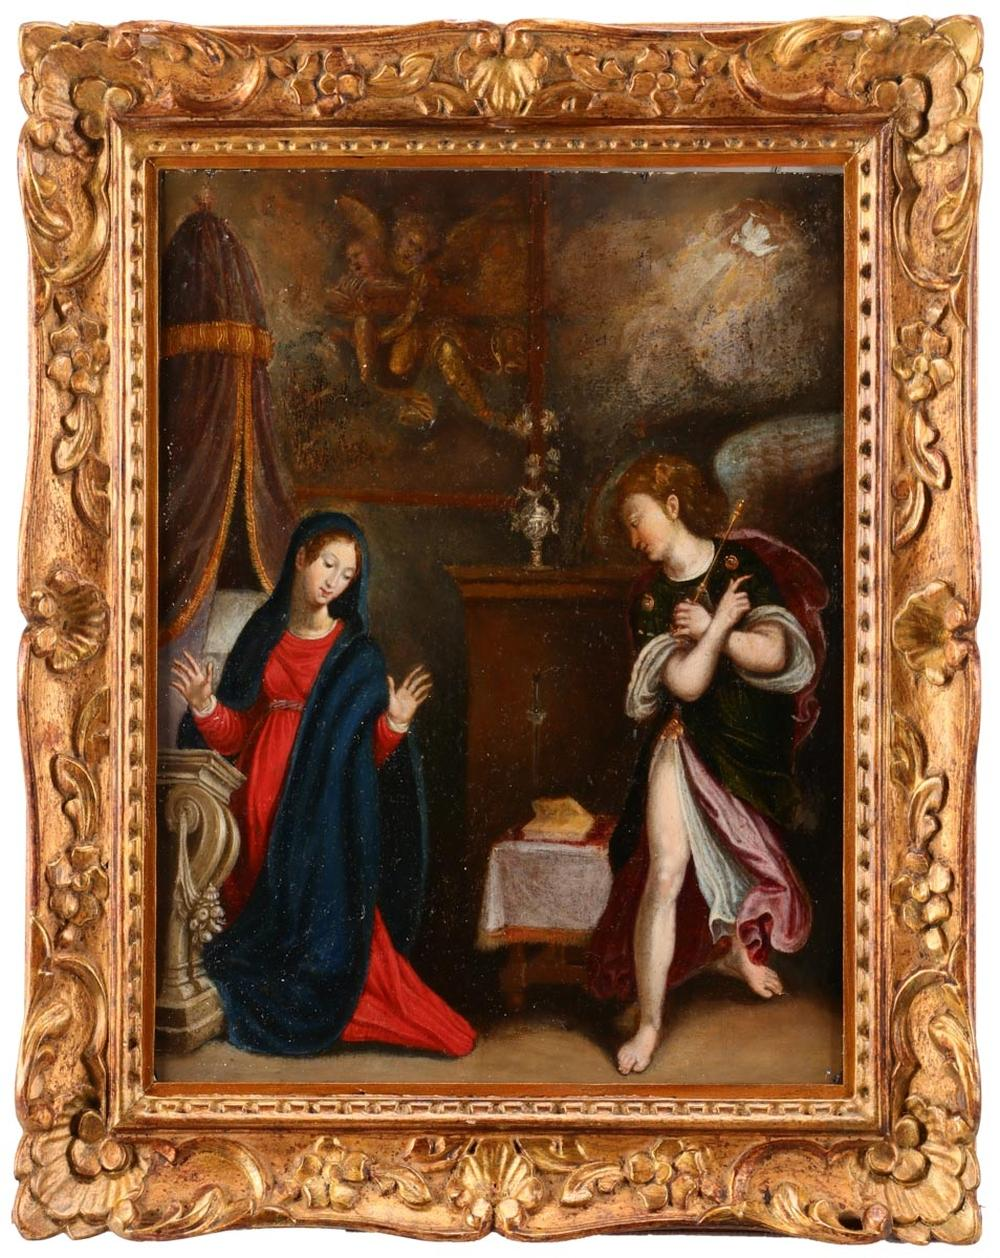 FLEMISH SCHOOL (ATTRIBUTABLE TO THE 17TH CENTURY), ANUNCIATION